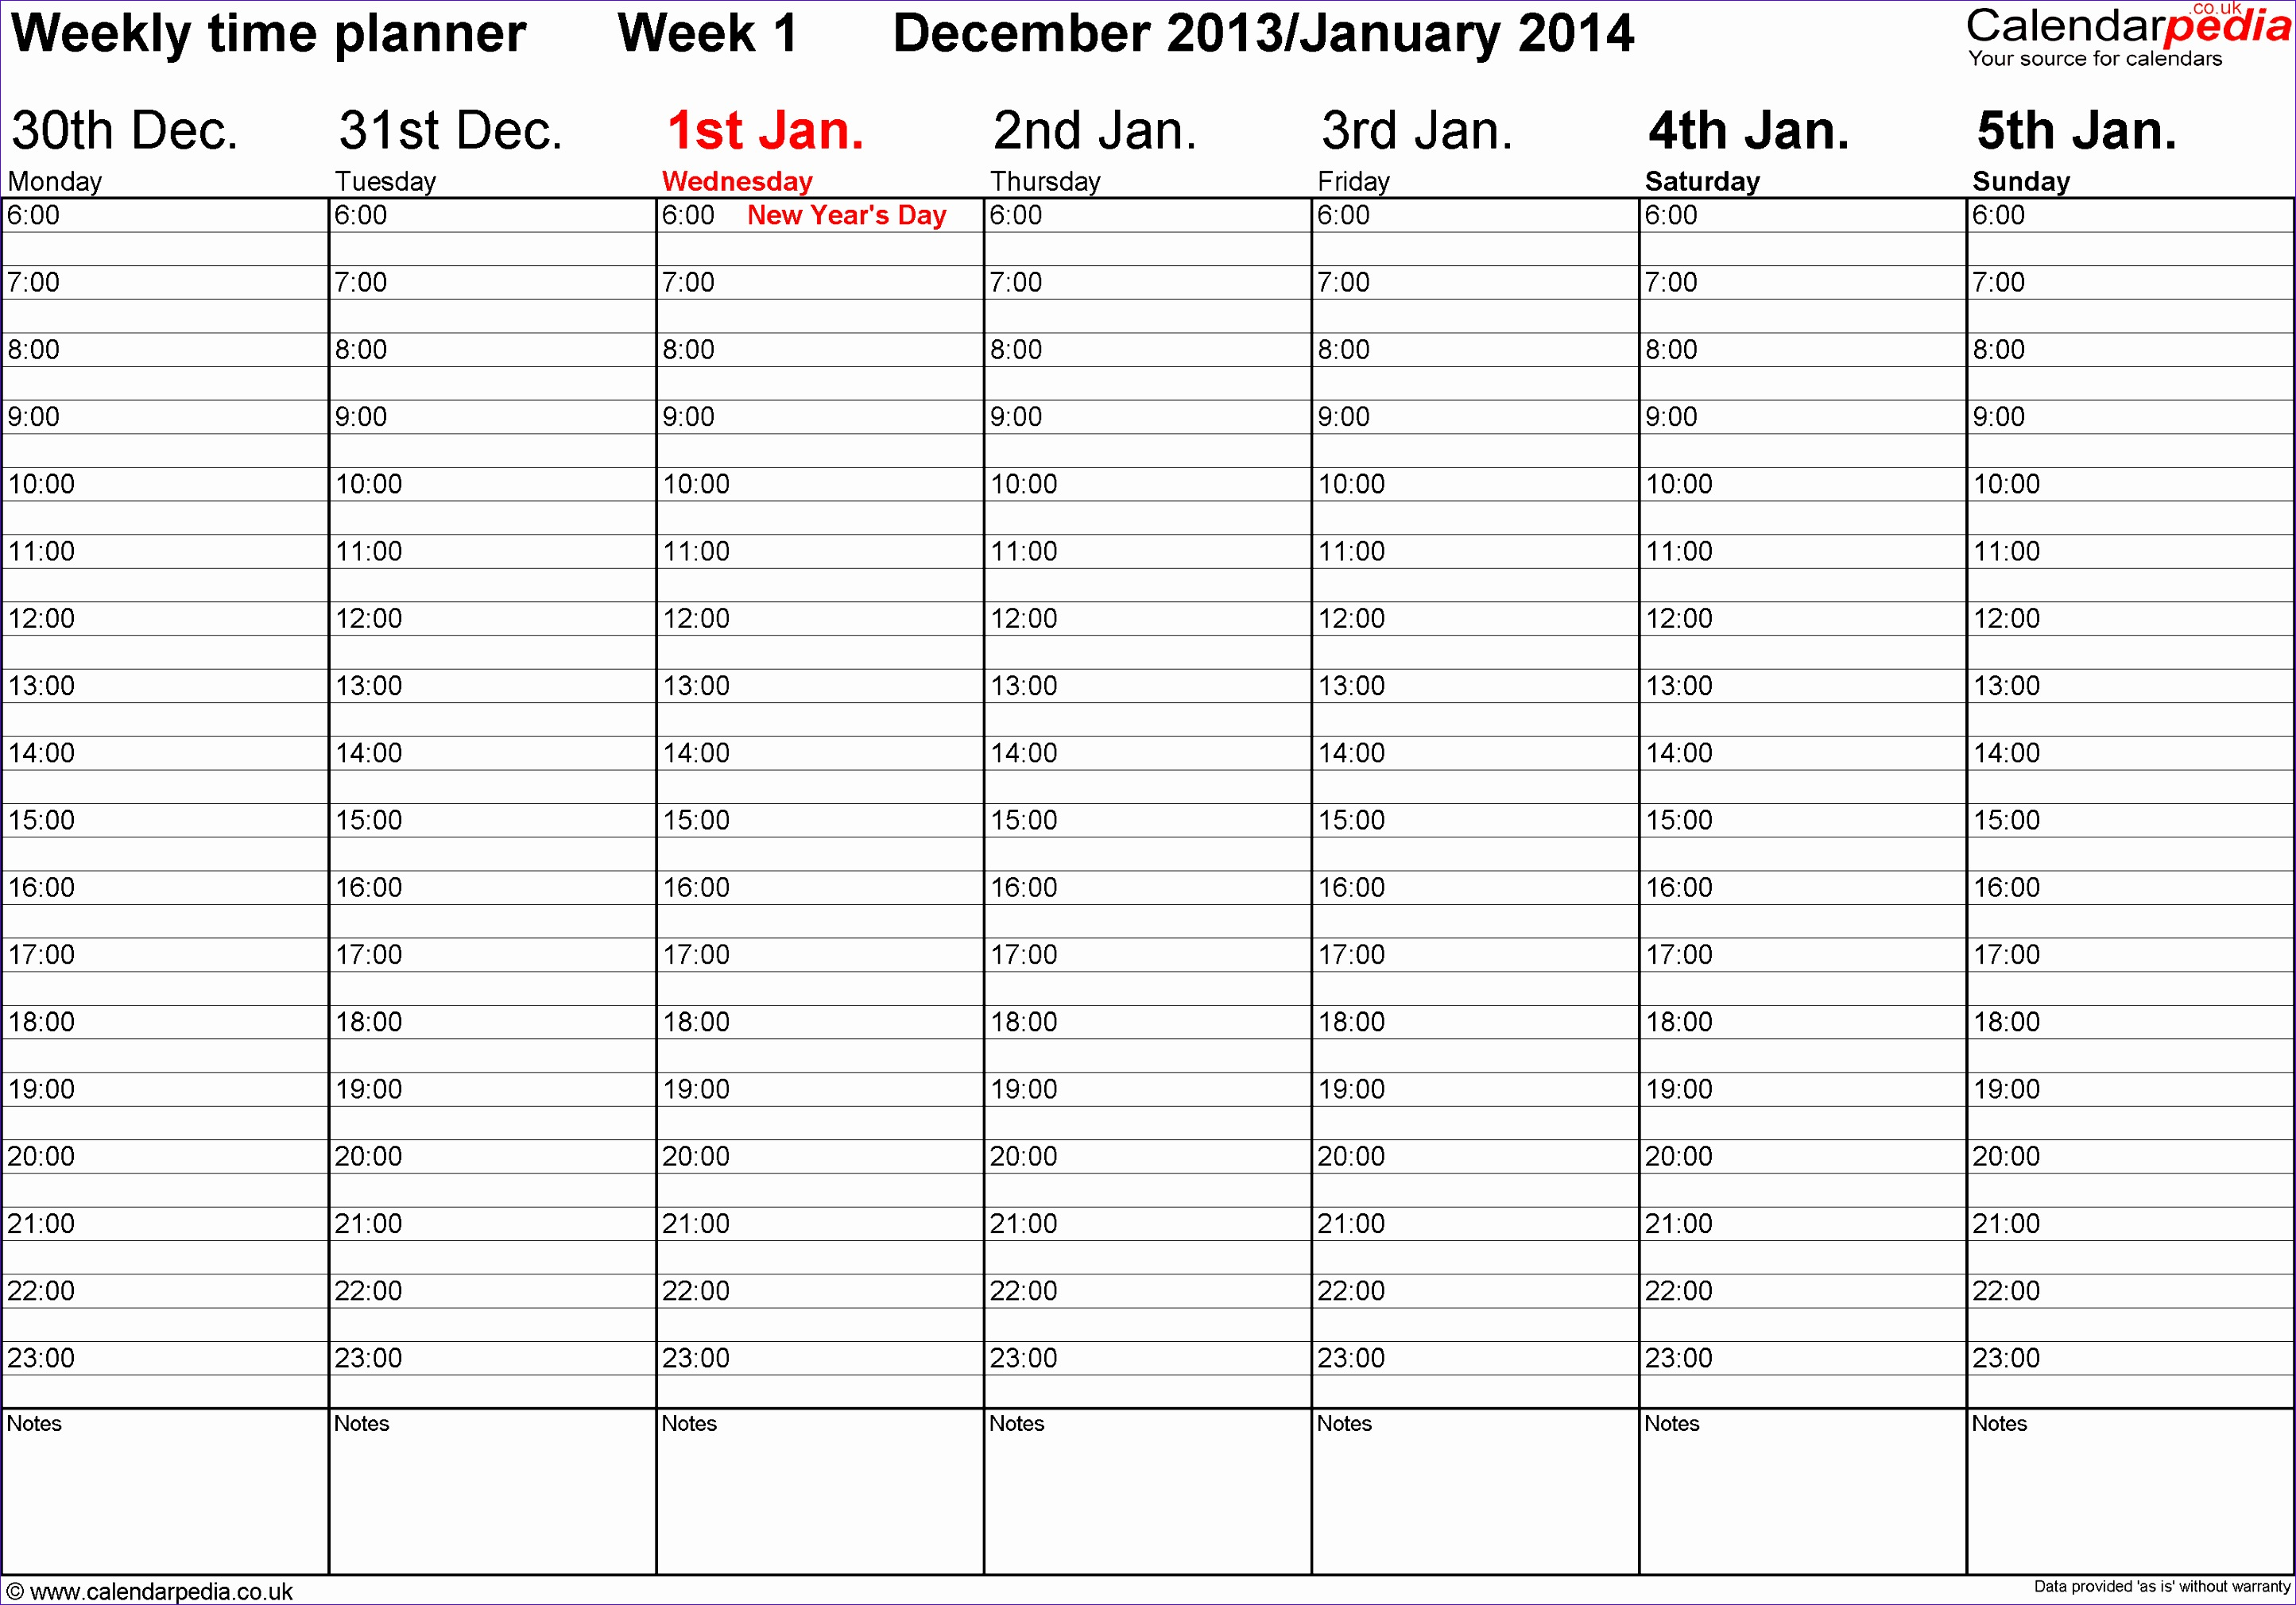 Ms Excel Calendar Template 2014 Csgsu Inspirational Weekly Calendar 2014 Uk Free Printable Templates for Excel